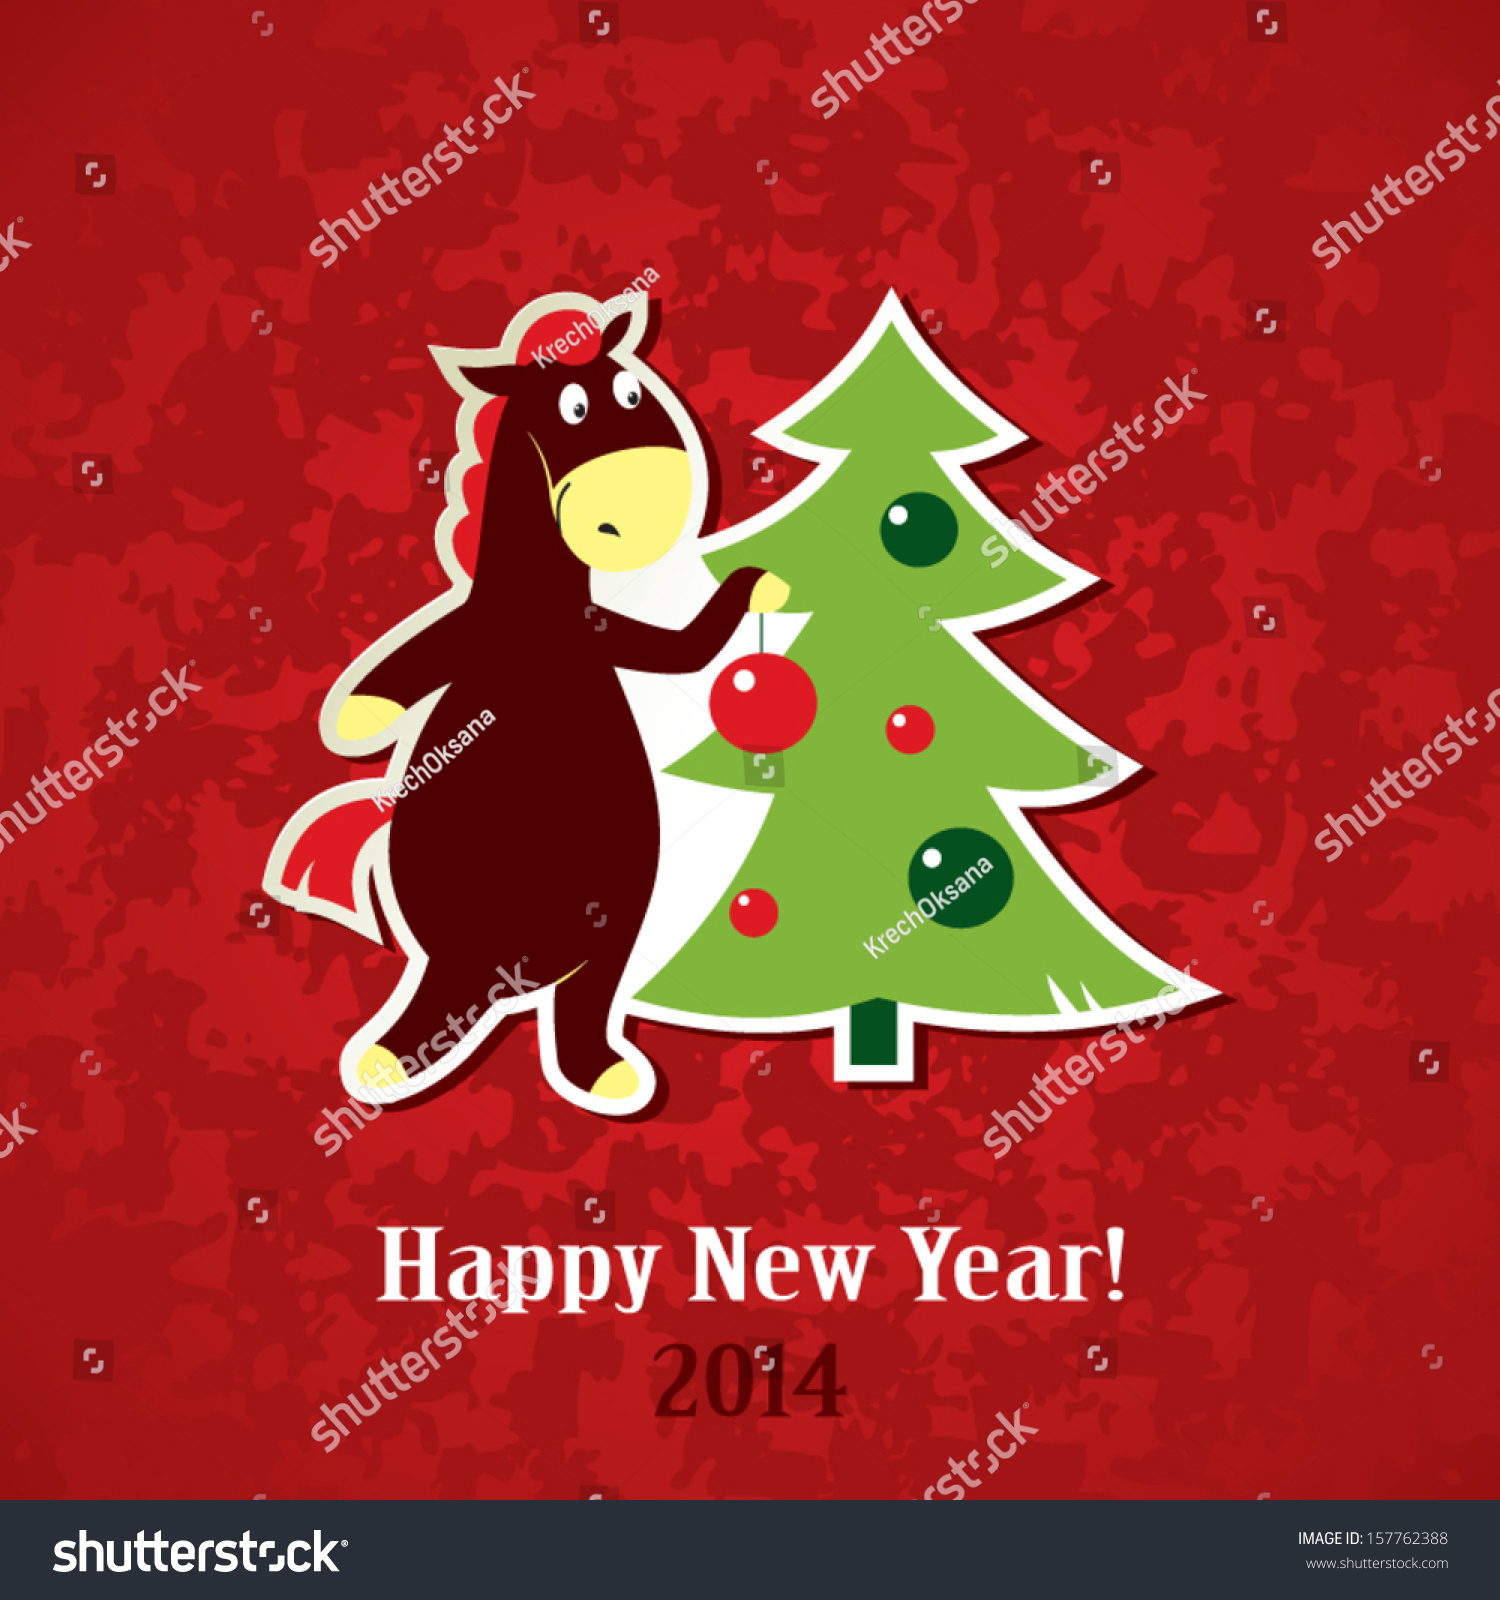 New year greeting card horse christmas stock vector royalty free new year greeting card horse with a christmas tree m4hsunfo